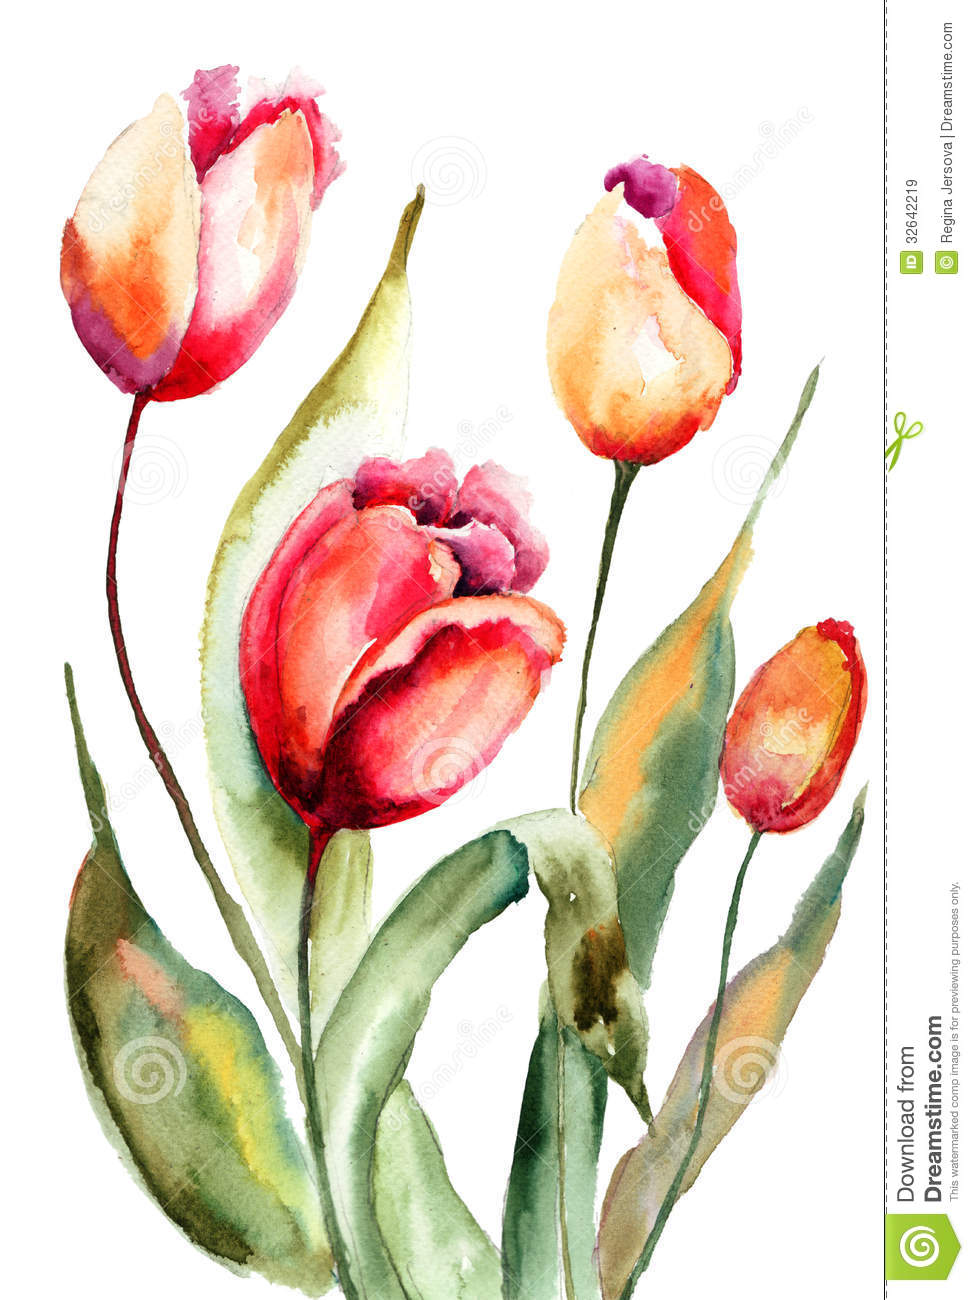 Tulips Flowers Royalty Free Stock Images - Image: 32642219